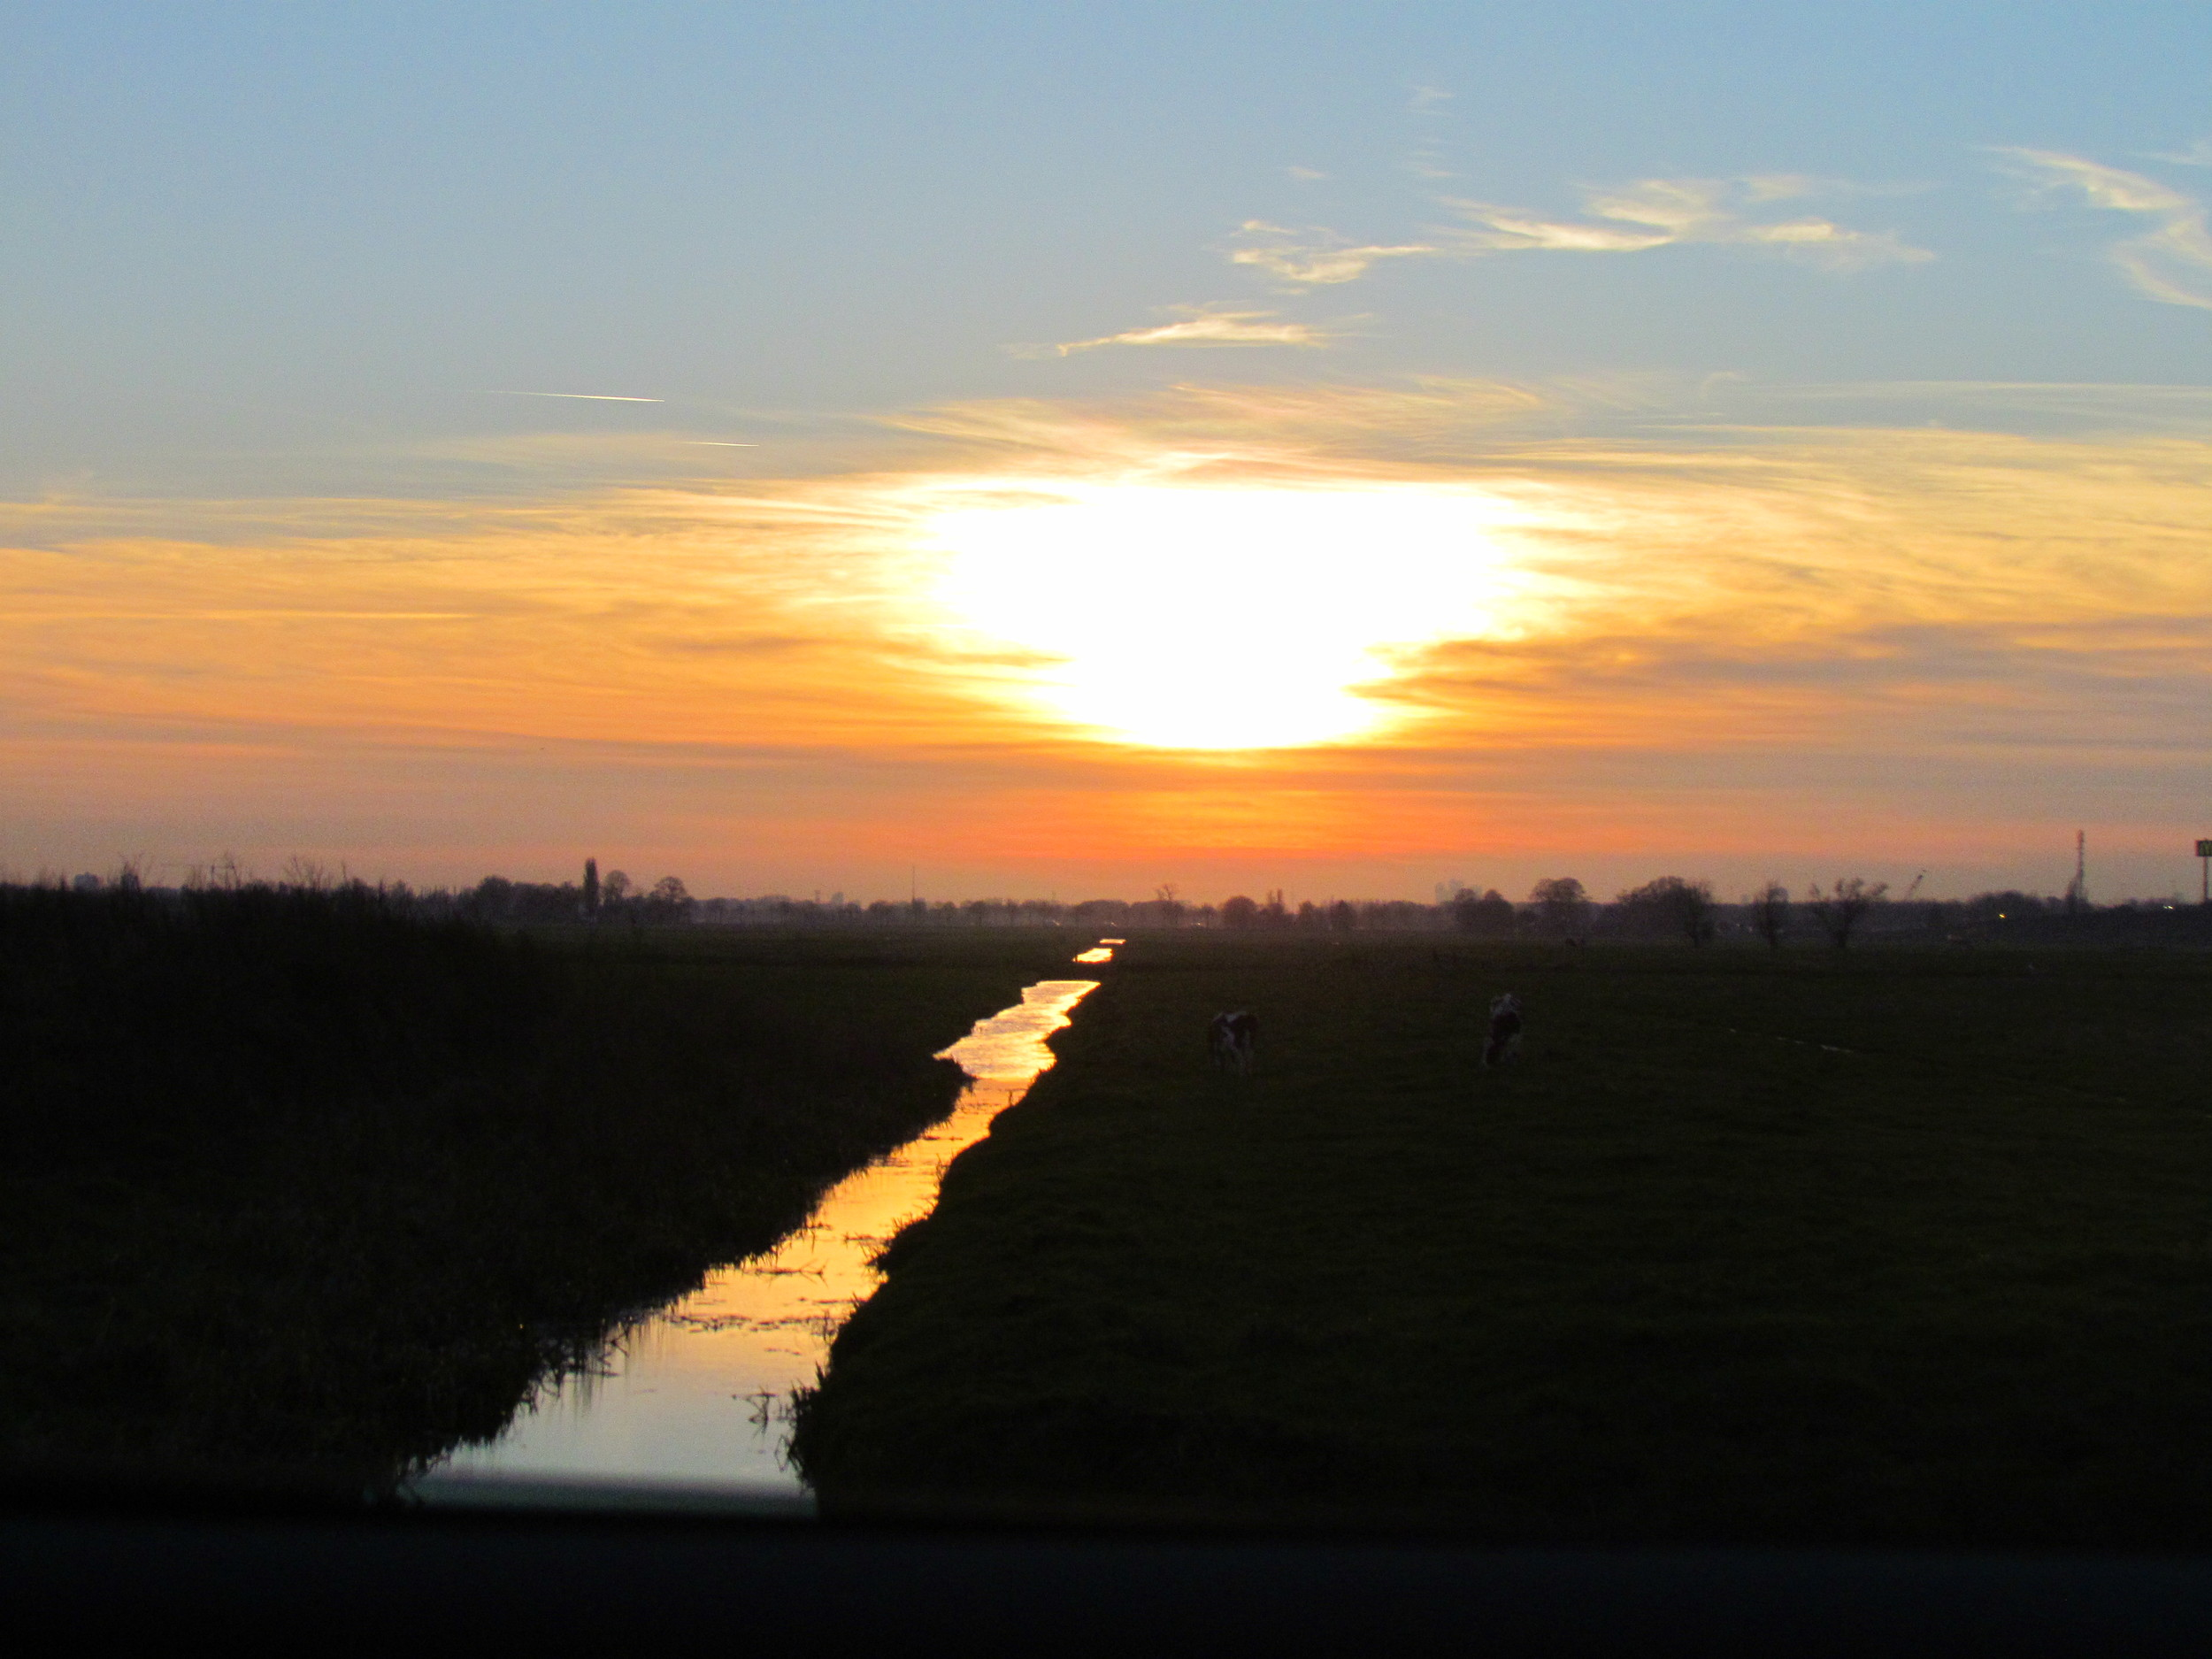 On our way back from Gouda - typical Dutch landscape